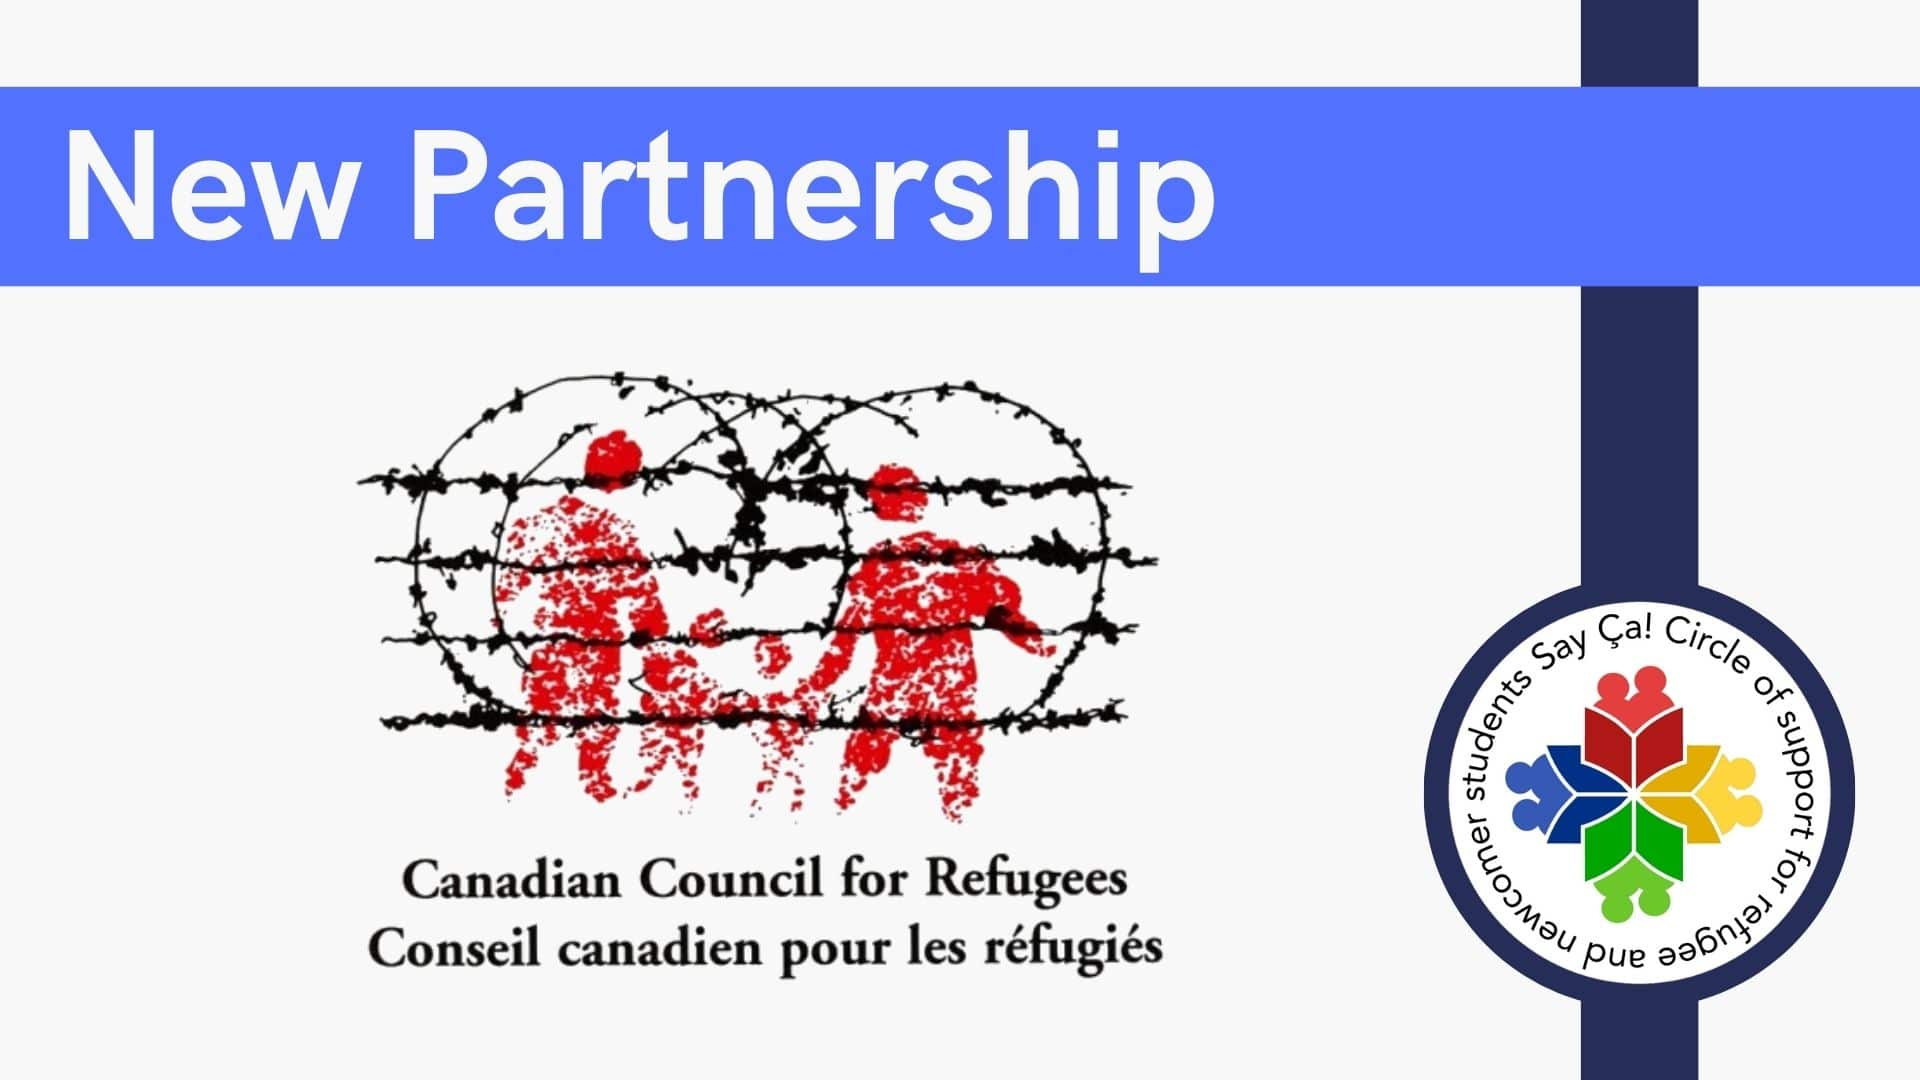 New Partnership Say Ça! Canadian Council for Refugees